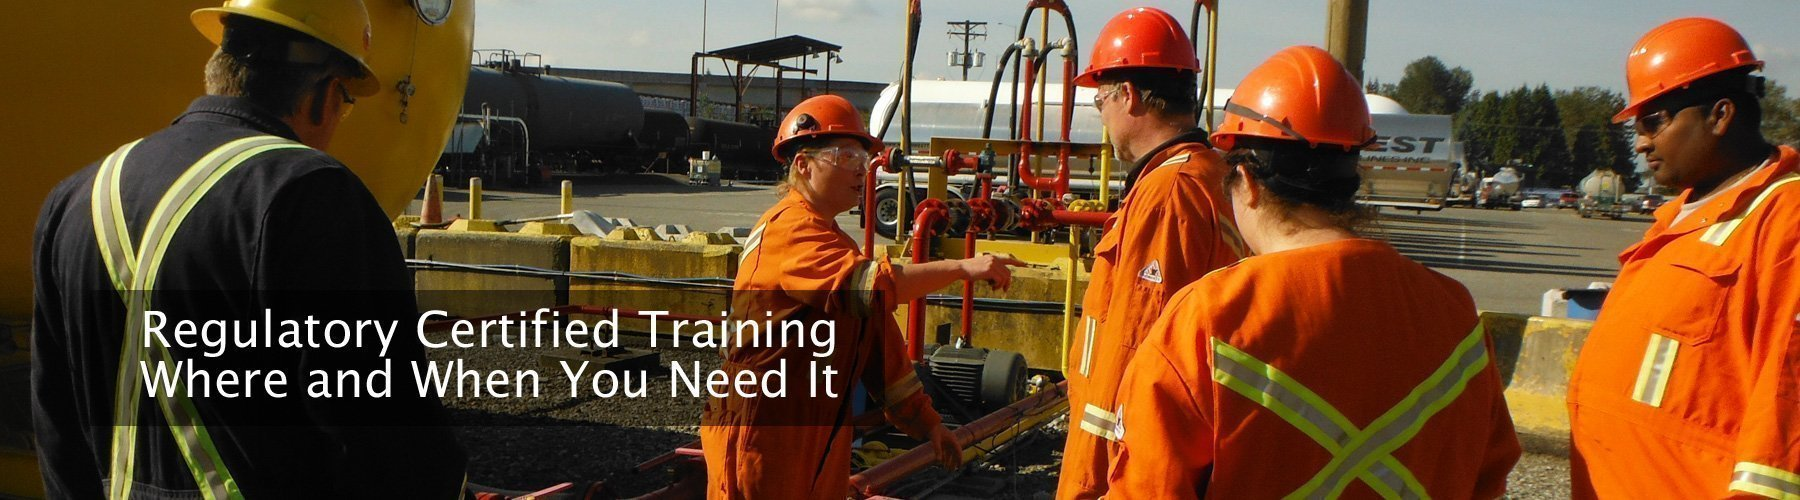 Certified Workplace Training - Team Works Solutions